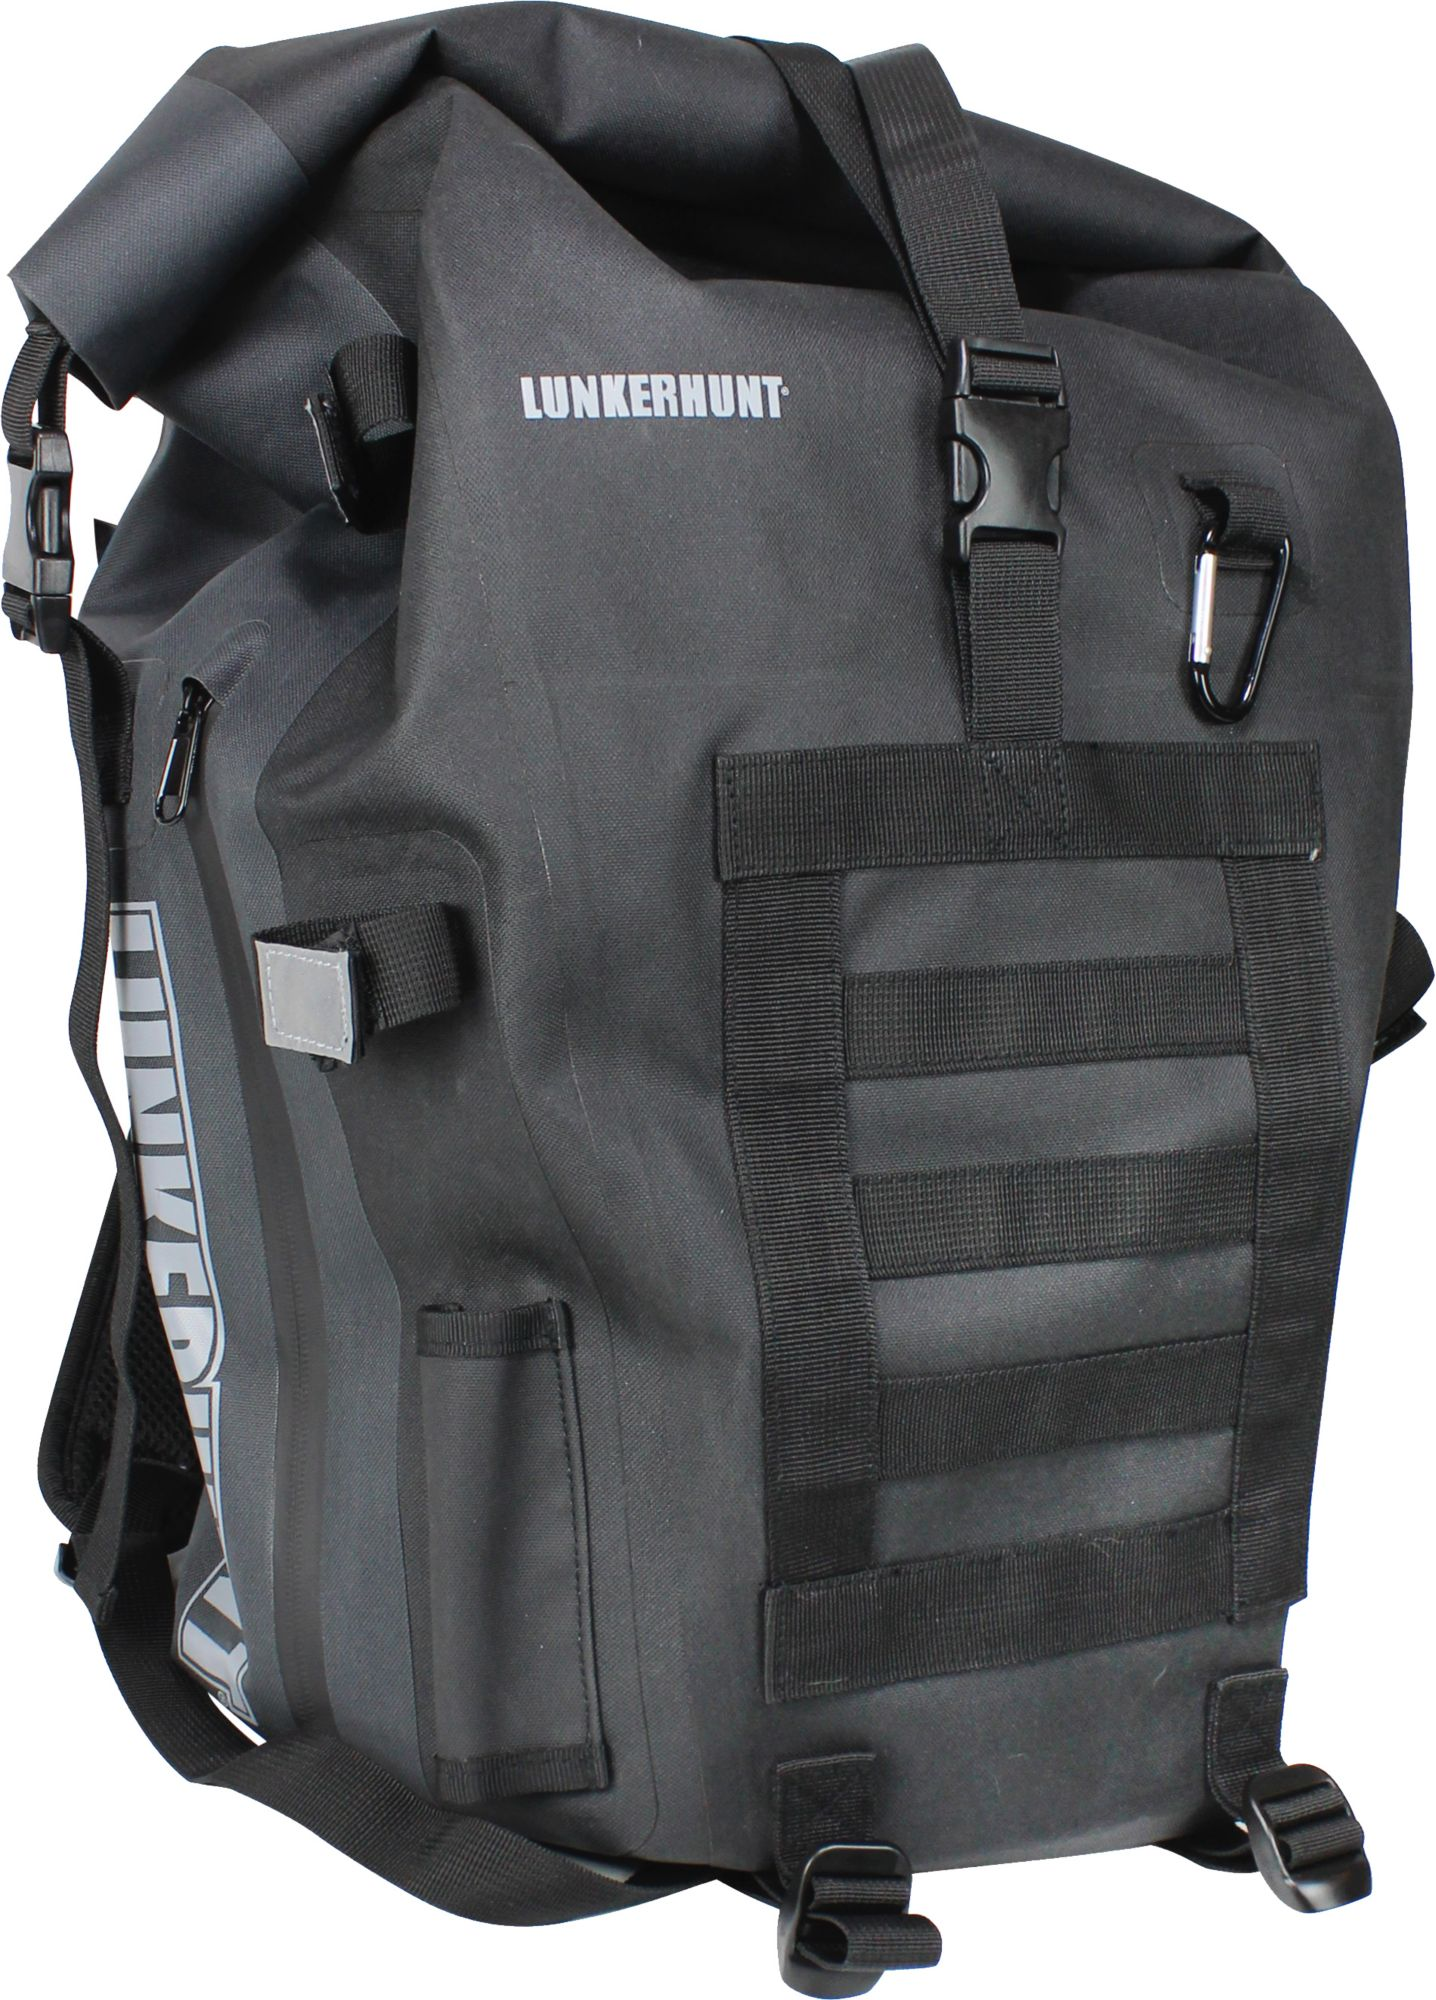 Lunkerhunt LTS Avid Tackle Backpack, Size: One size